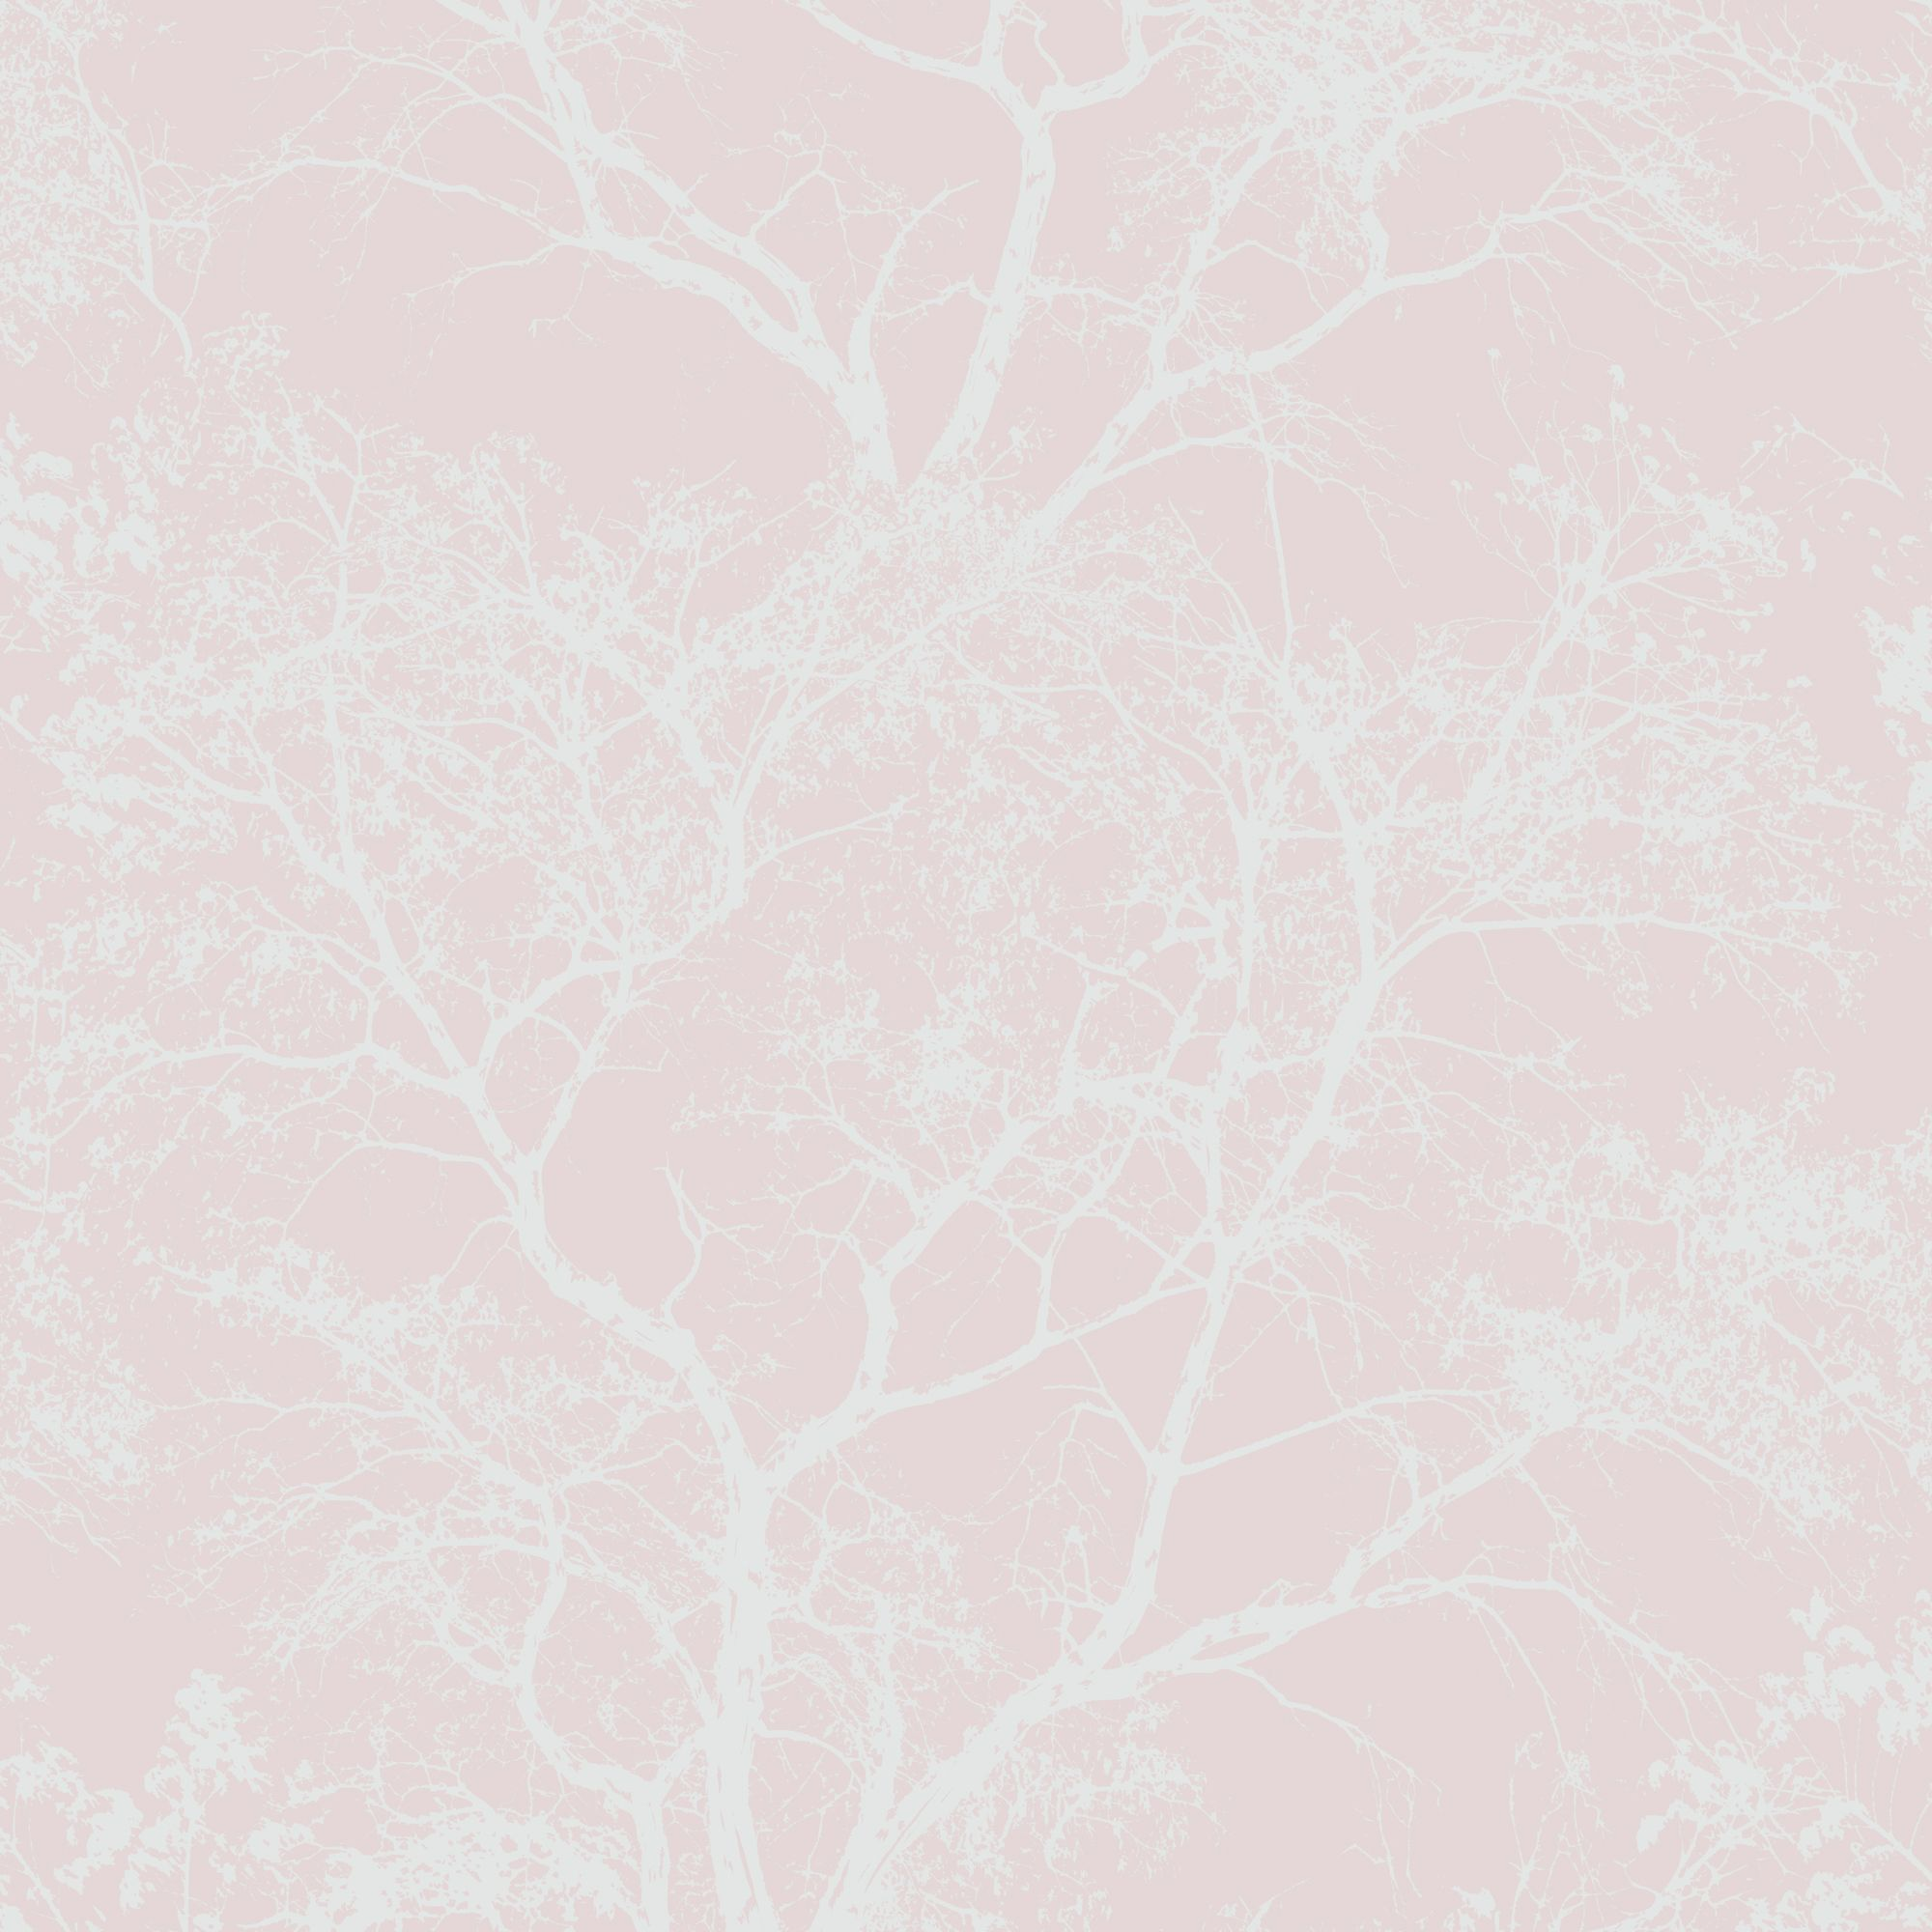 Statement Whispering Pink Trees Glitter Effect Wallpaper